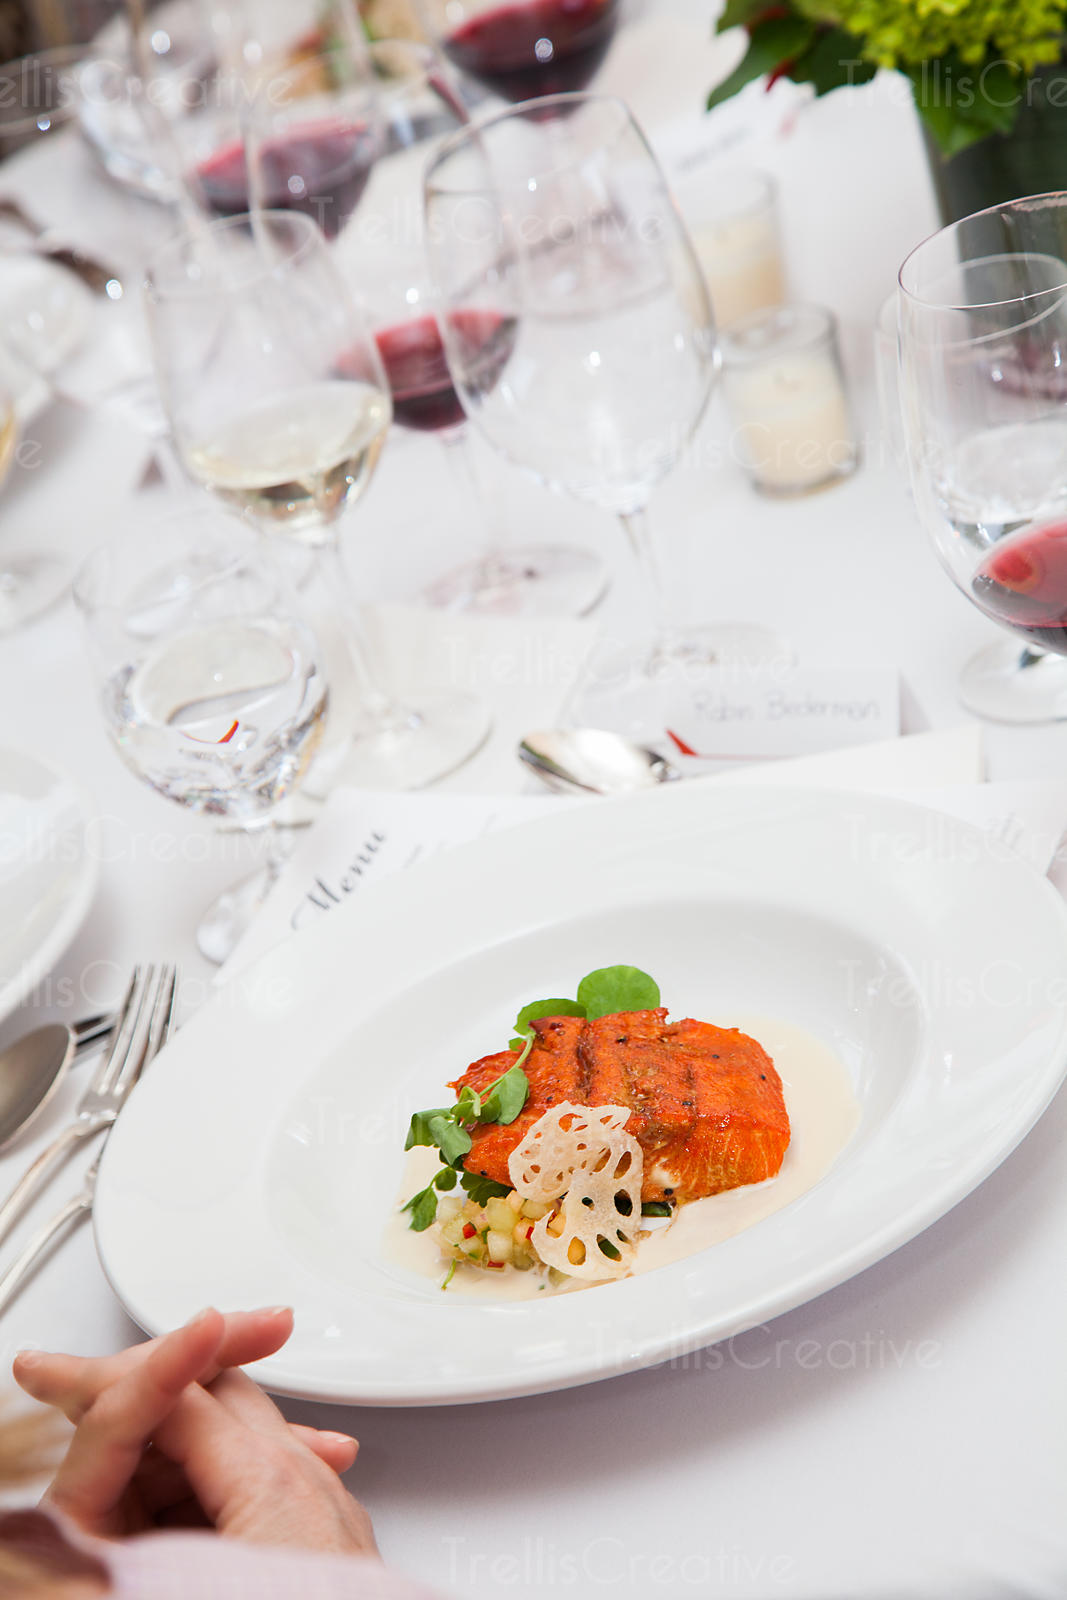 Colorful salmon dinner on a crisp white plate and tablecloth. & Trellis Creative | White Plate